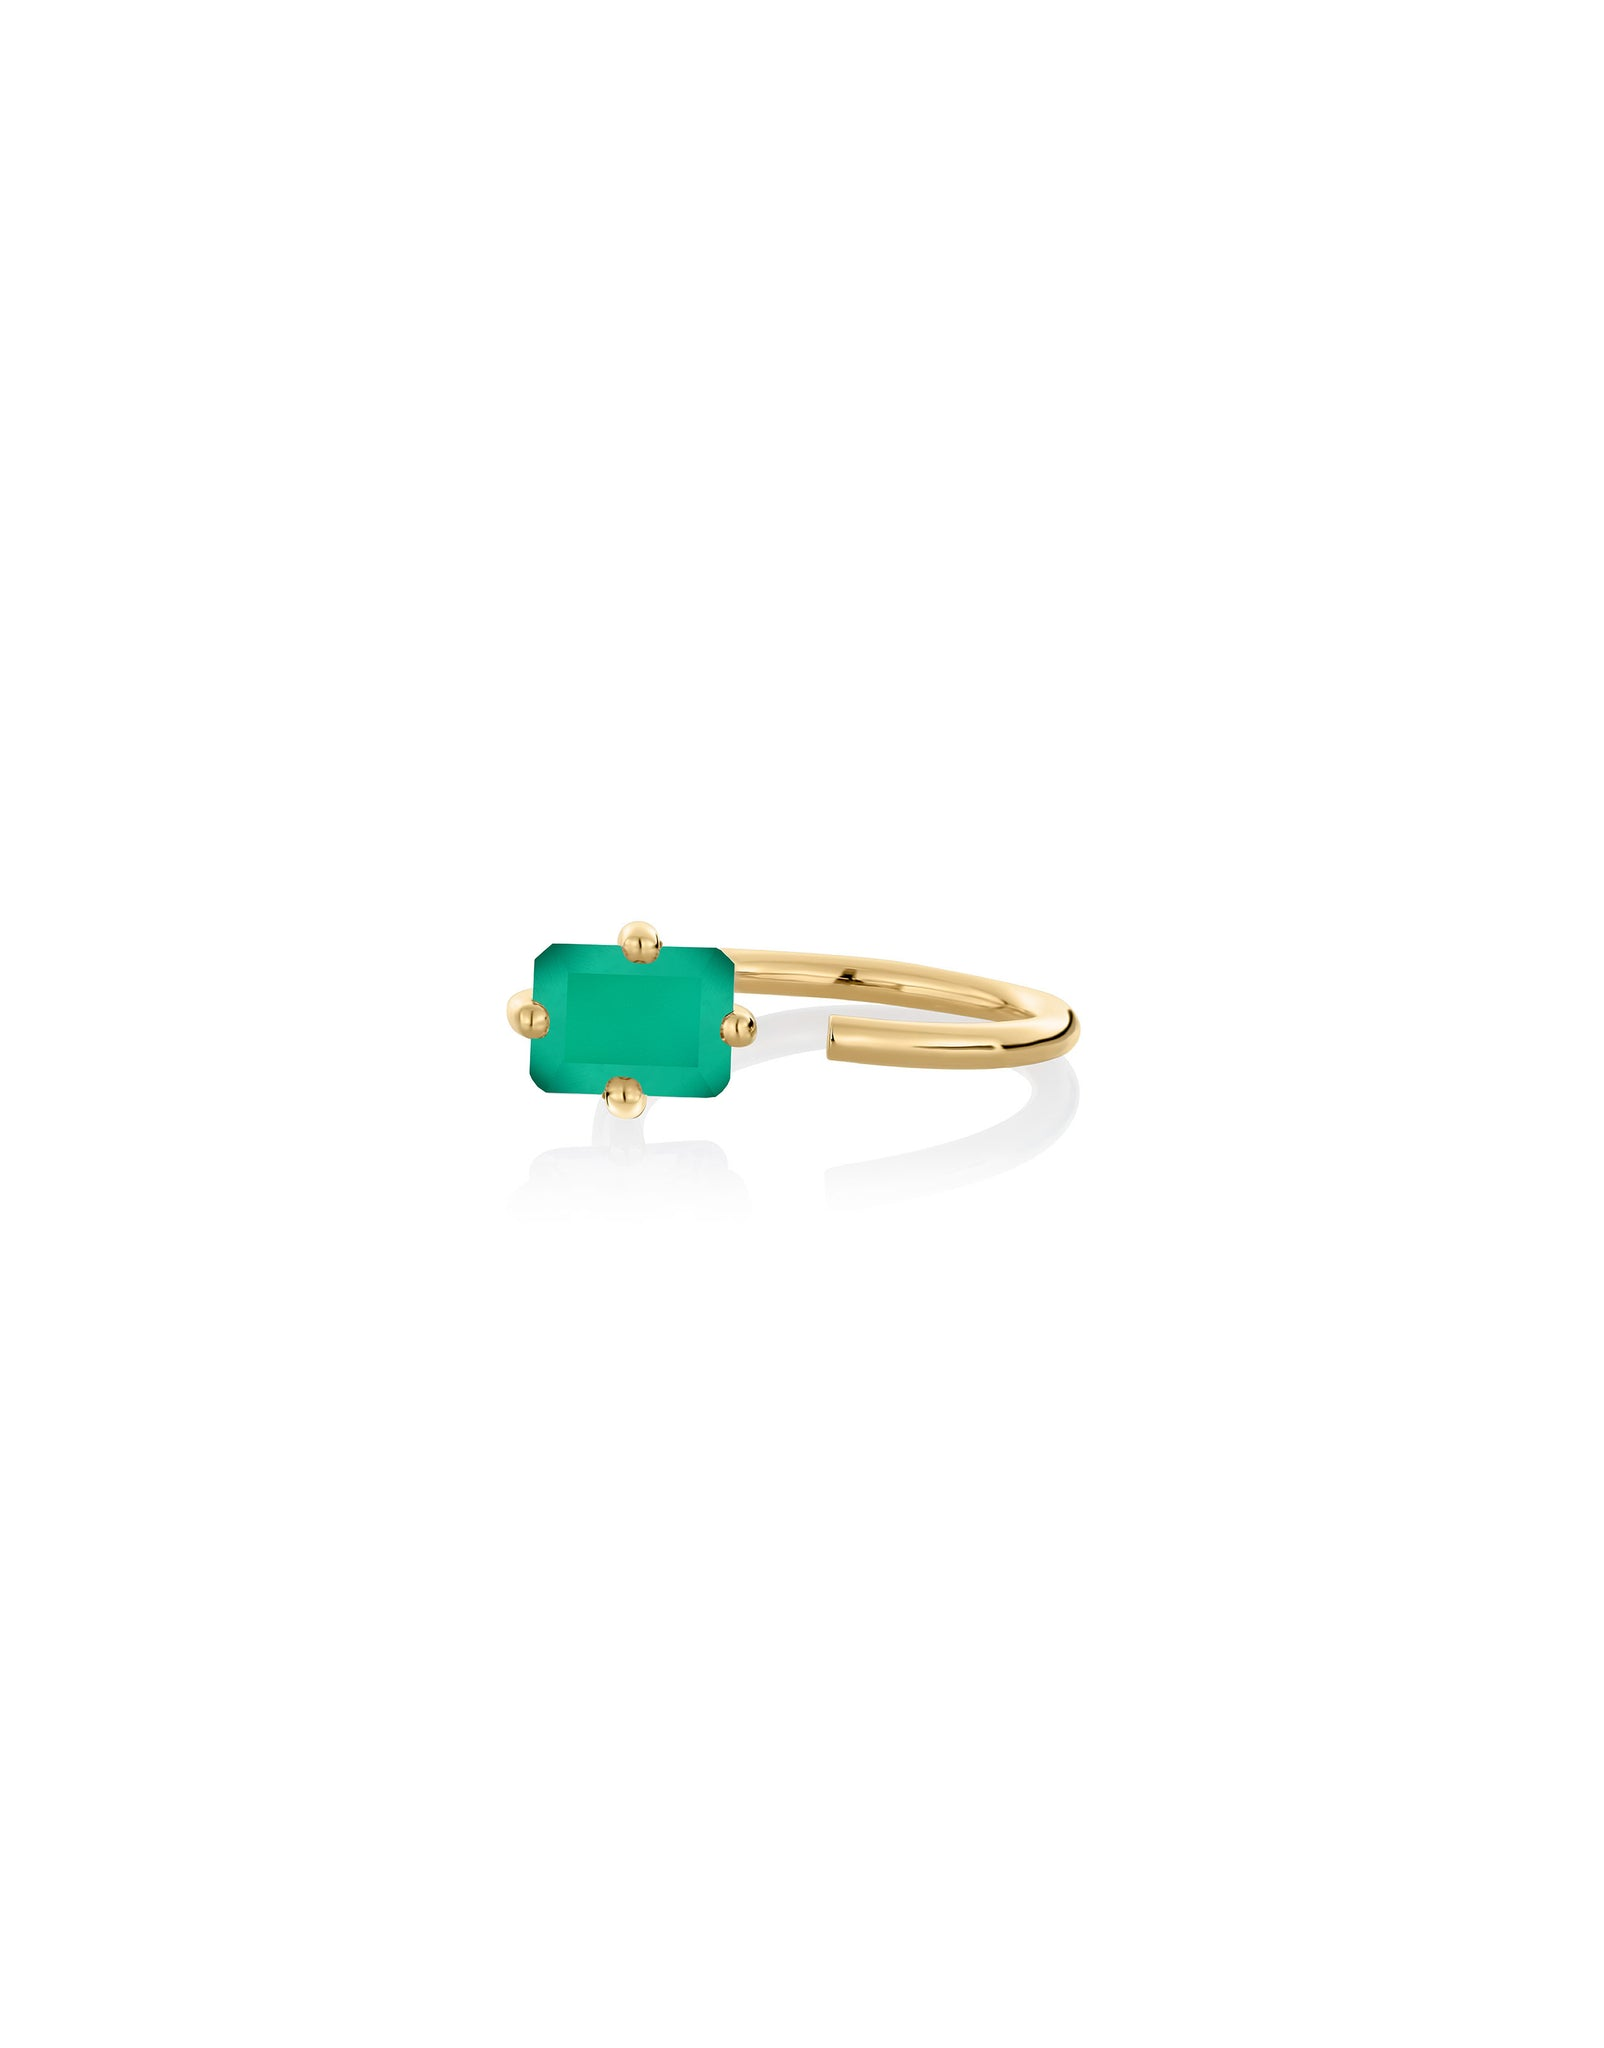 Ring 9K gold green onyx - Personalized octogone ring - Nayestones